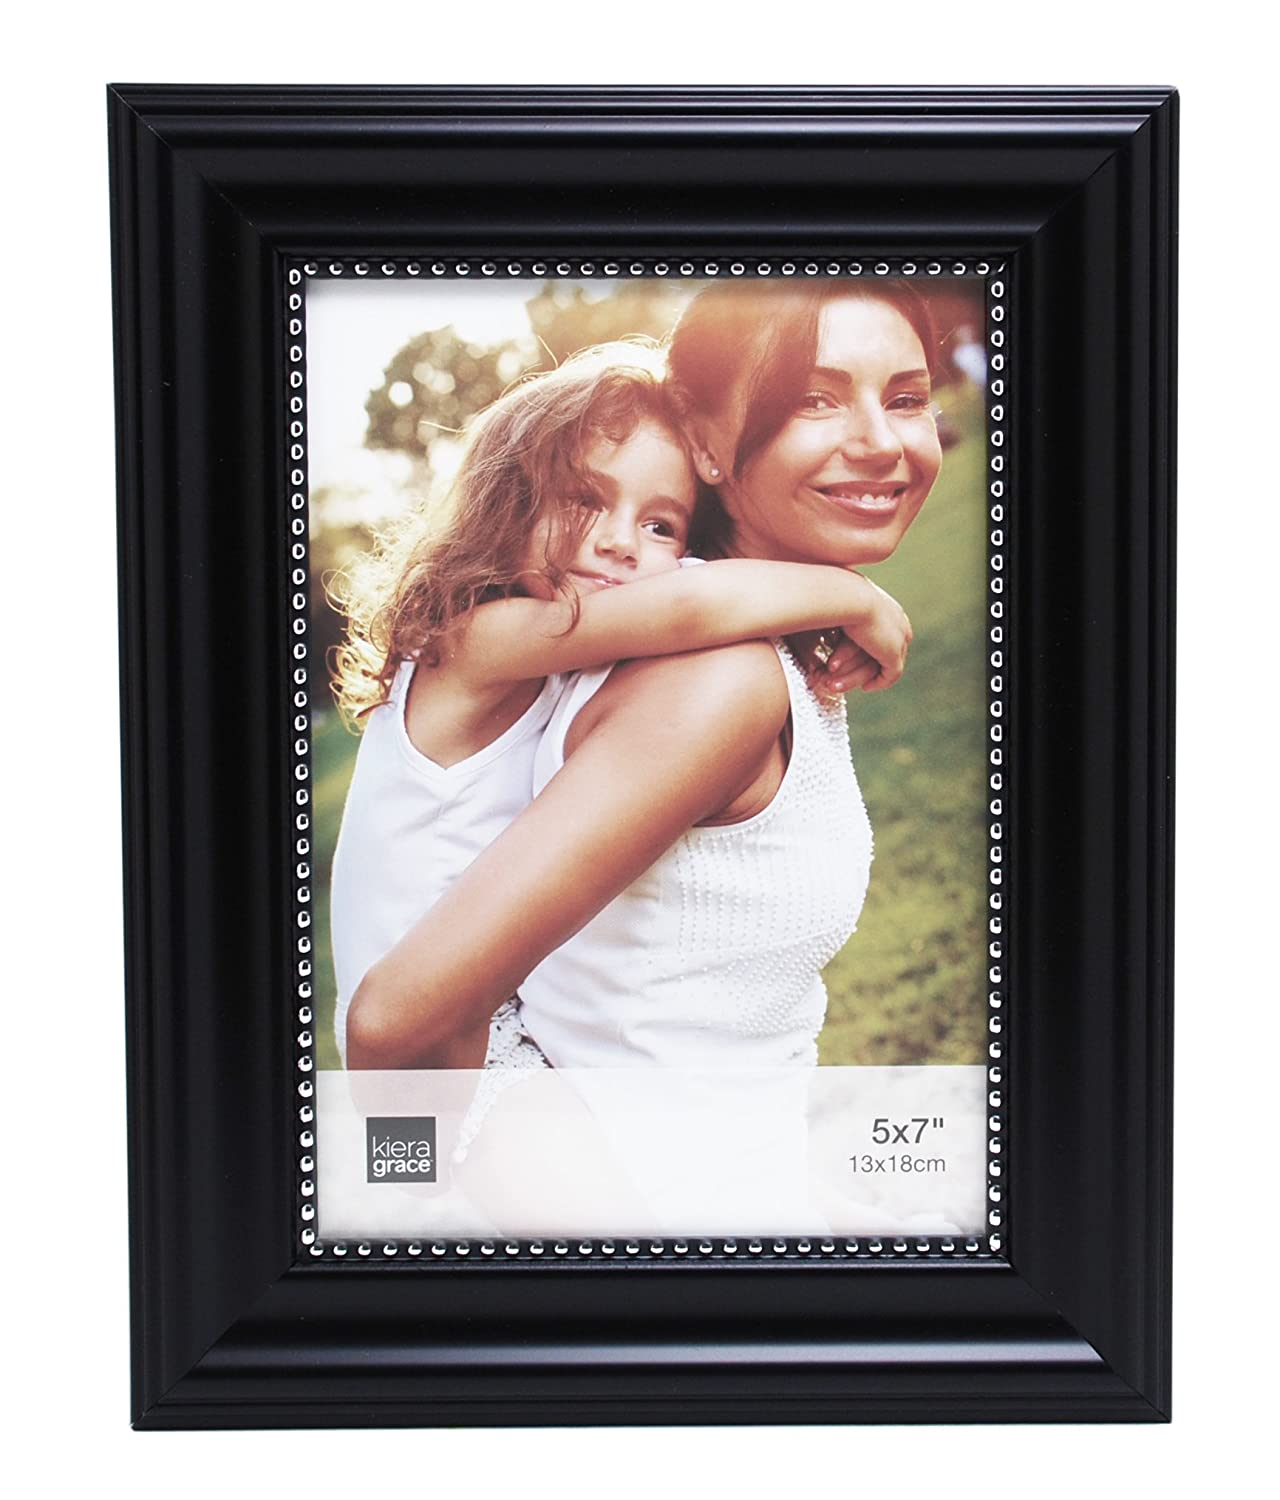 Kiera Grace Horizontal Lucy Collage Picture Frames on Hanging Ribbon, 5 by 7 Inch, Dark Brown with Gold Beading, Set of 3 PH44047-1